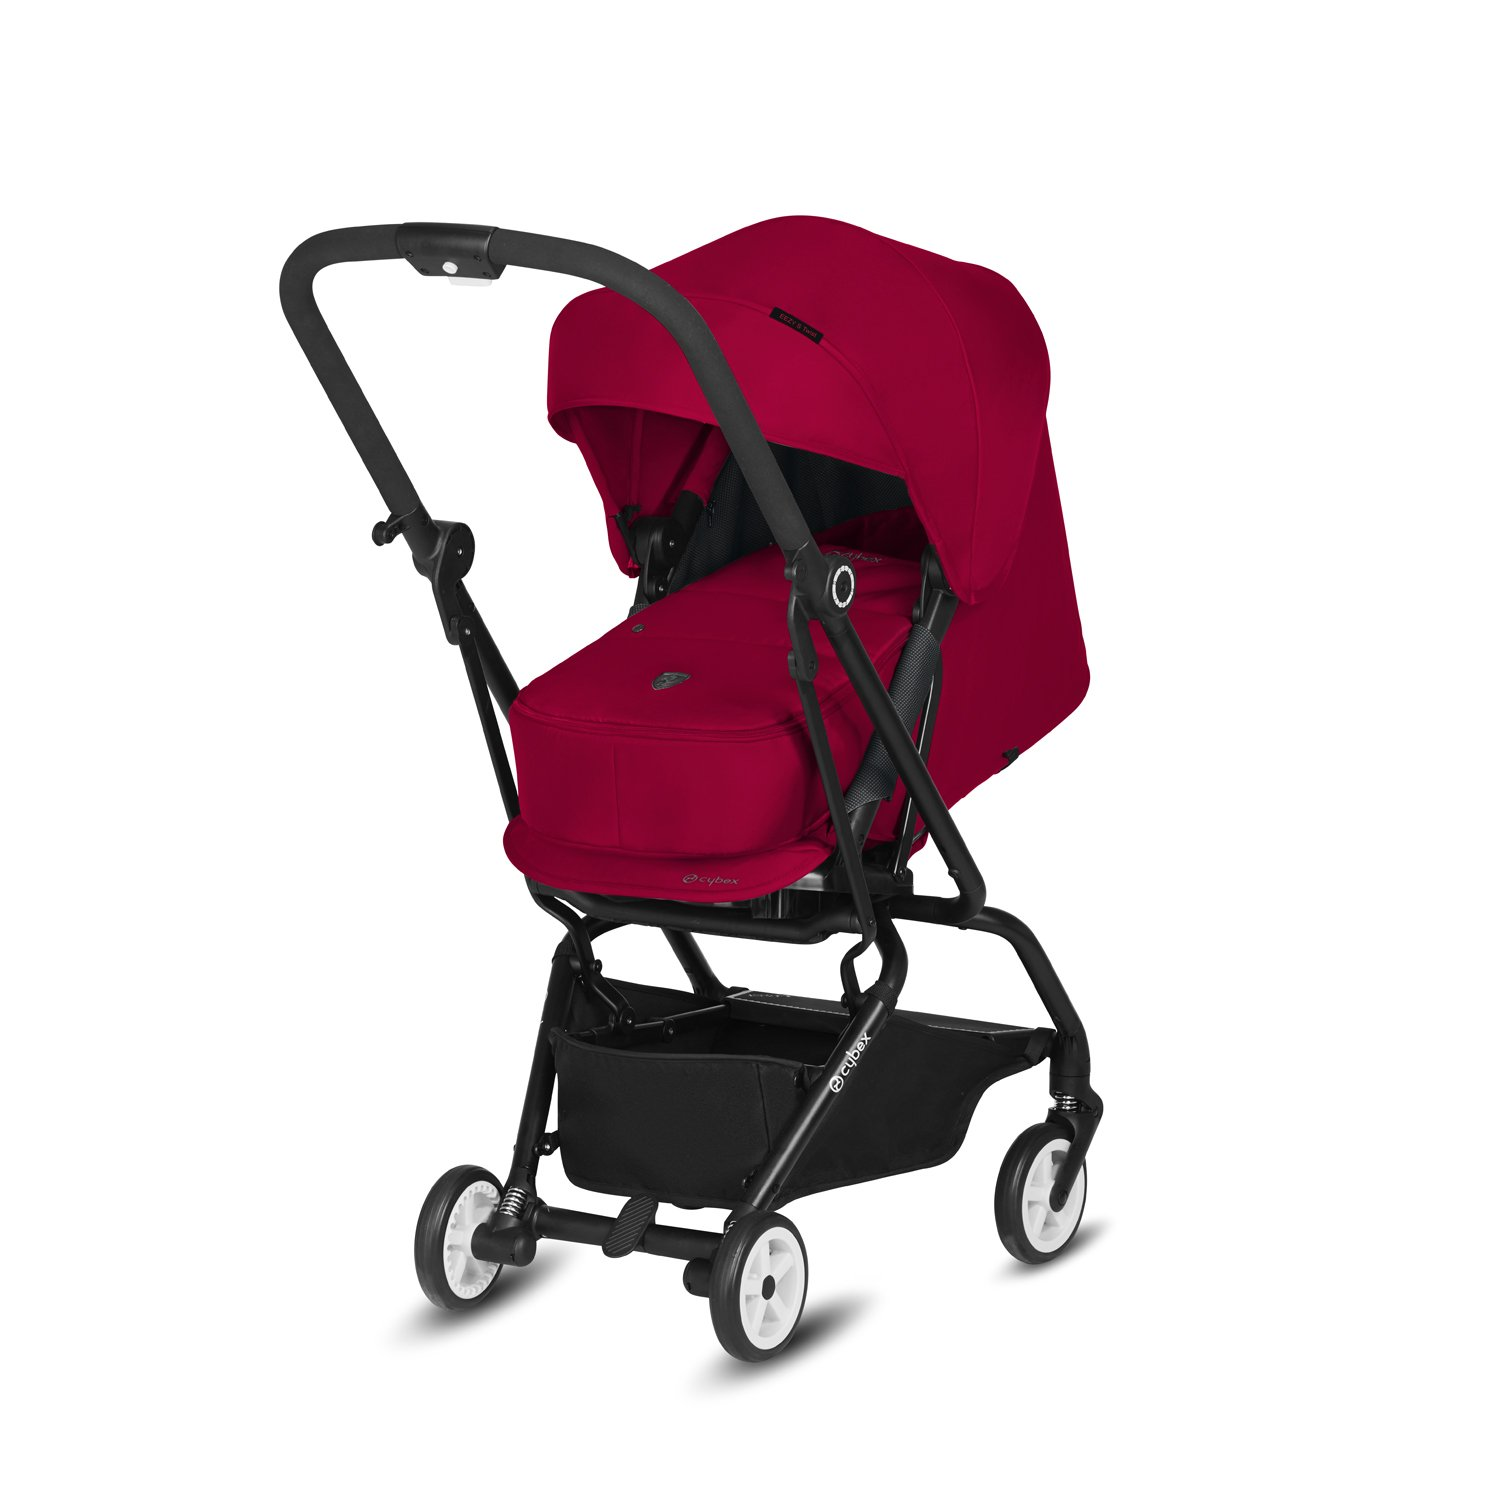 Lavastone Black From Birth to 6 Months CYBEX Gold Cocoon S Soft Carry Cot 9 kg